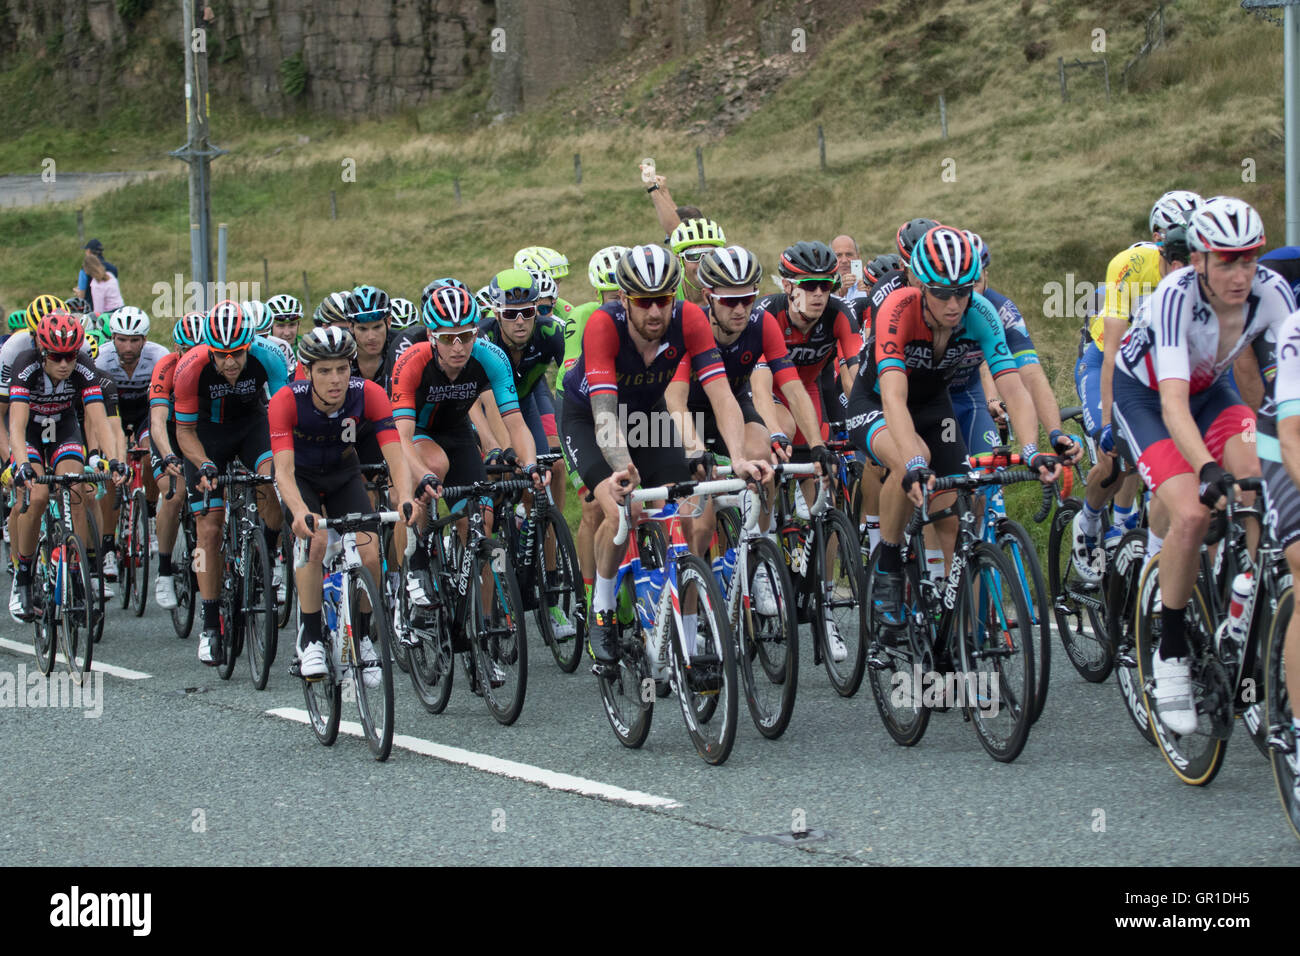 Cheshire, UK. 6th September, 2016. The peloton during the climb to the Cat and Fiddle, containing Sir Bradley Wiggins Stock Photo